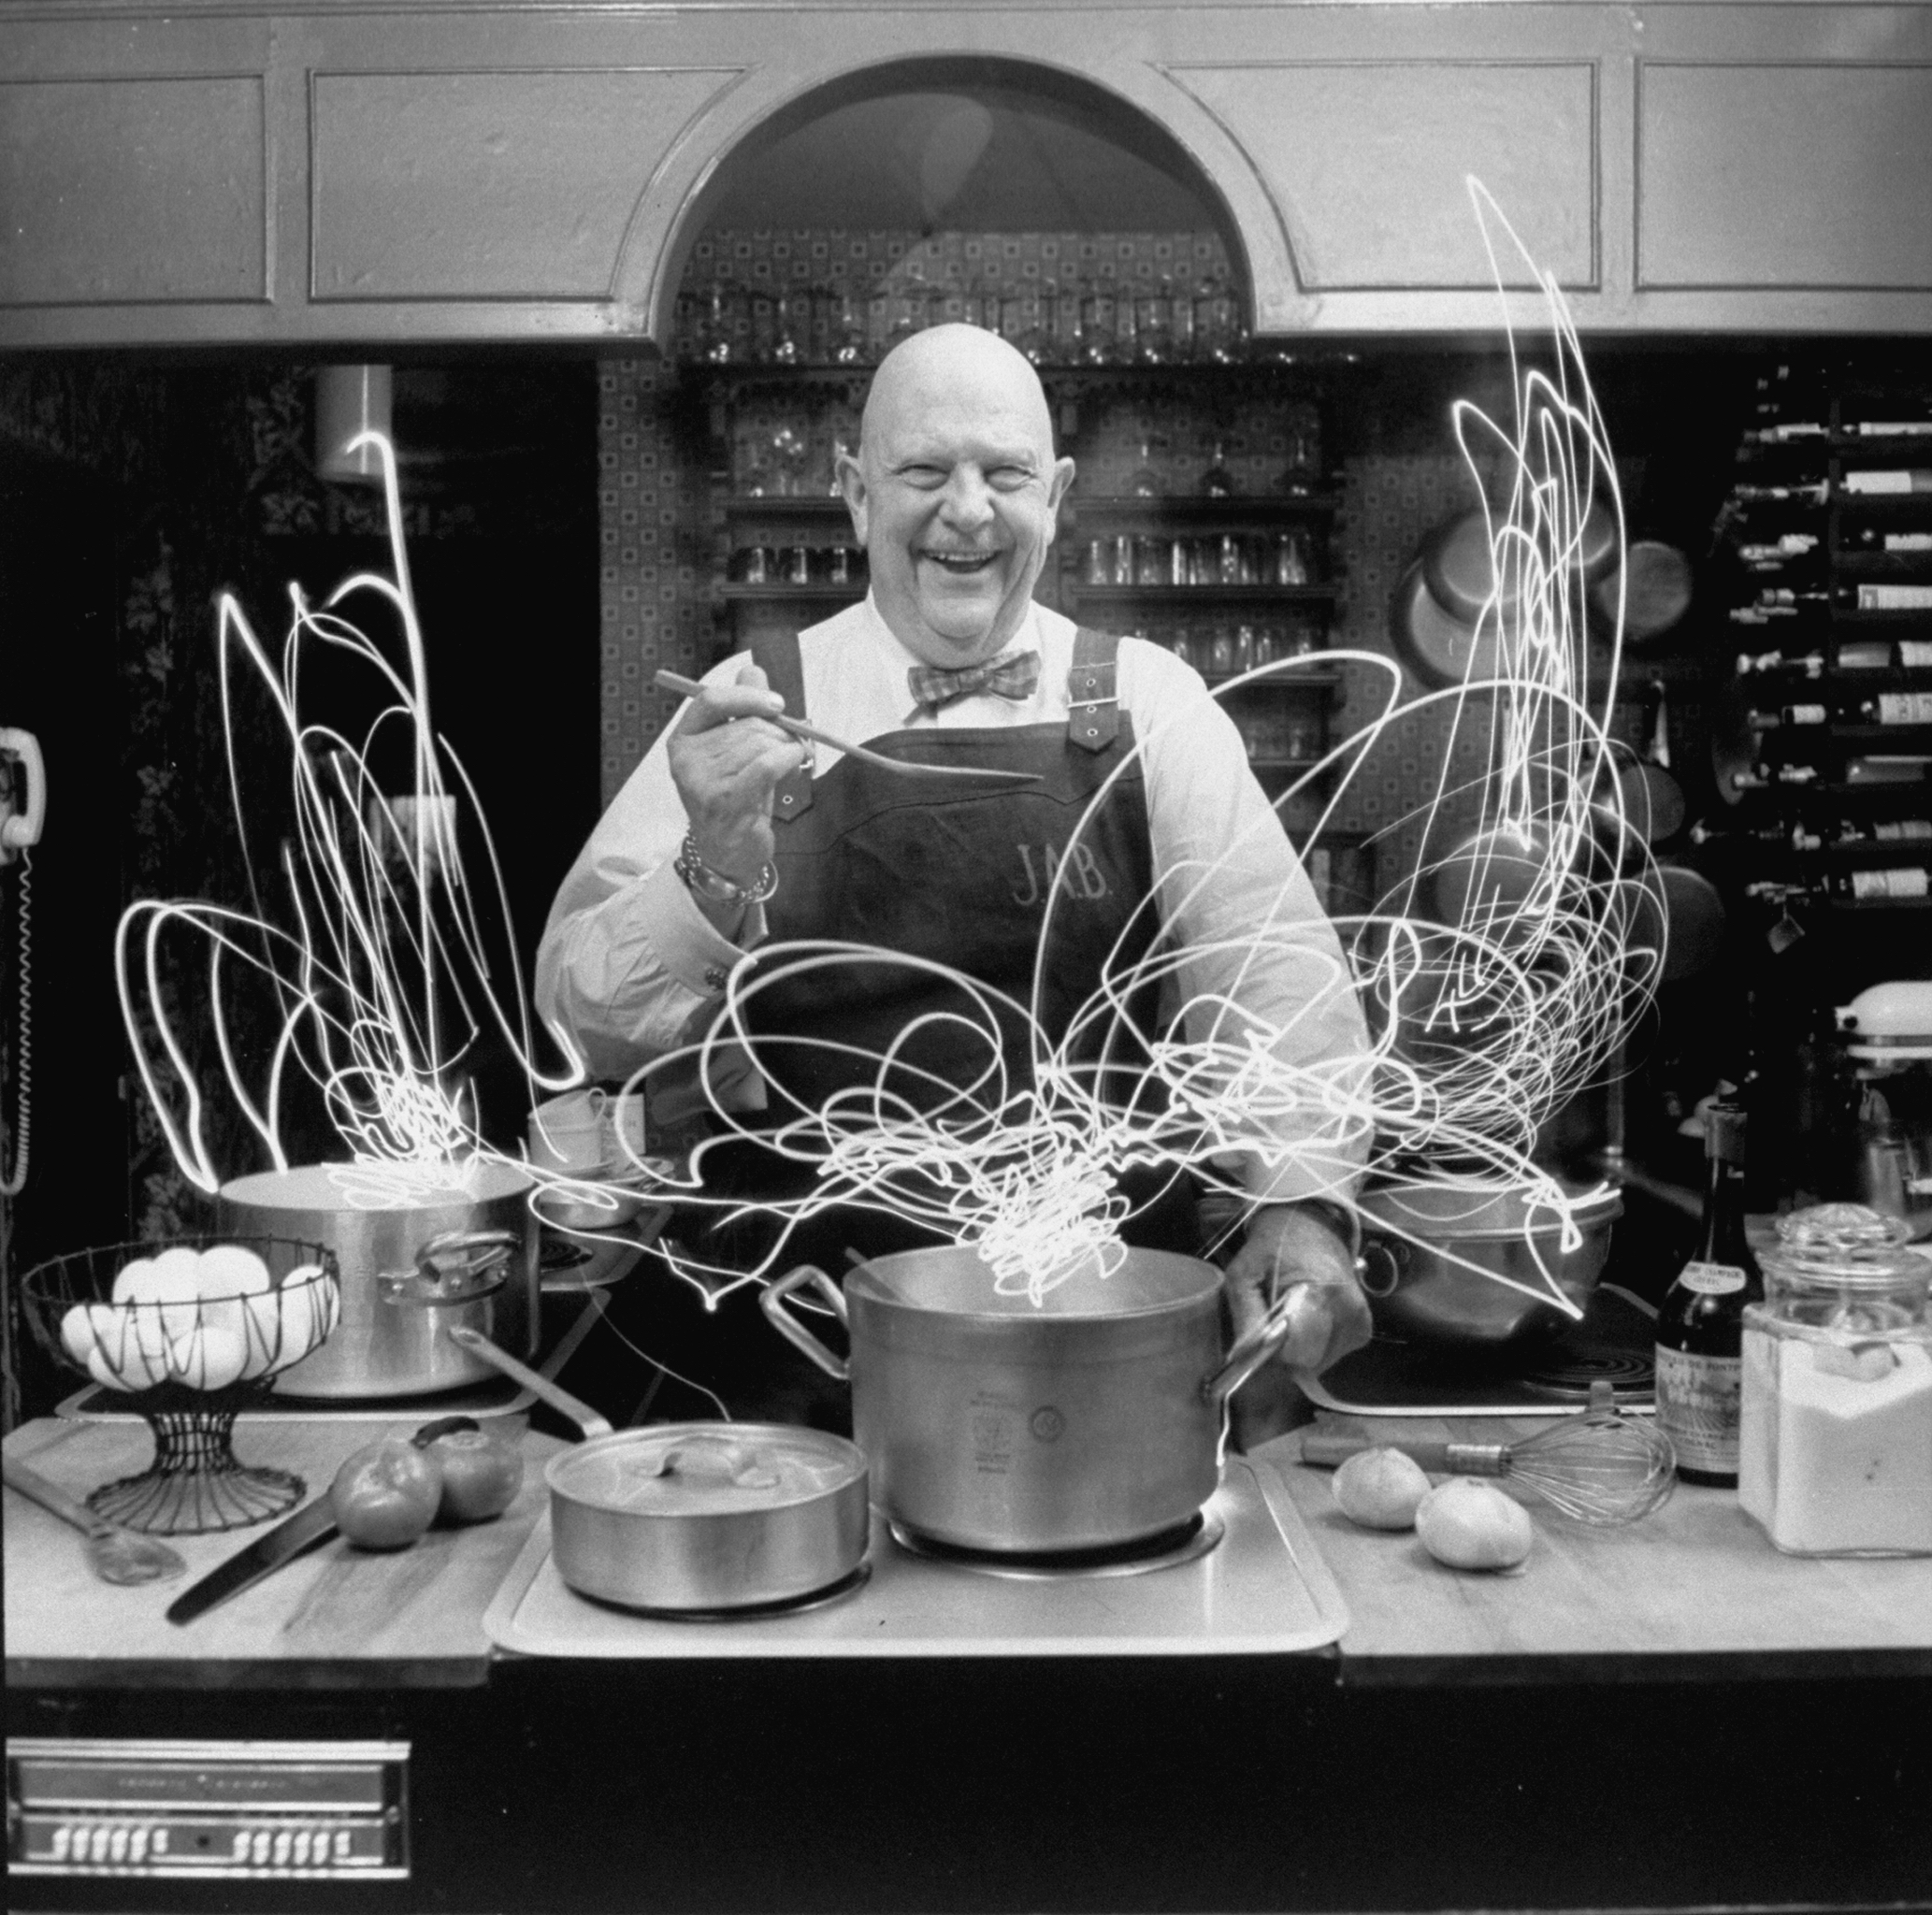 Author and top chef James A. Beard in the kitchen